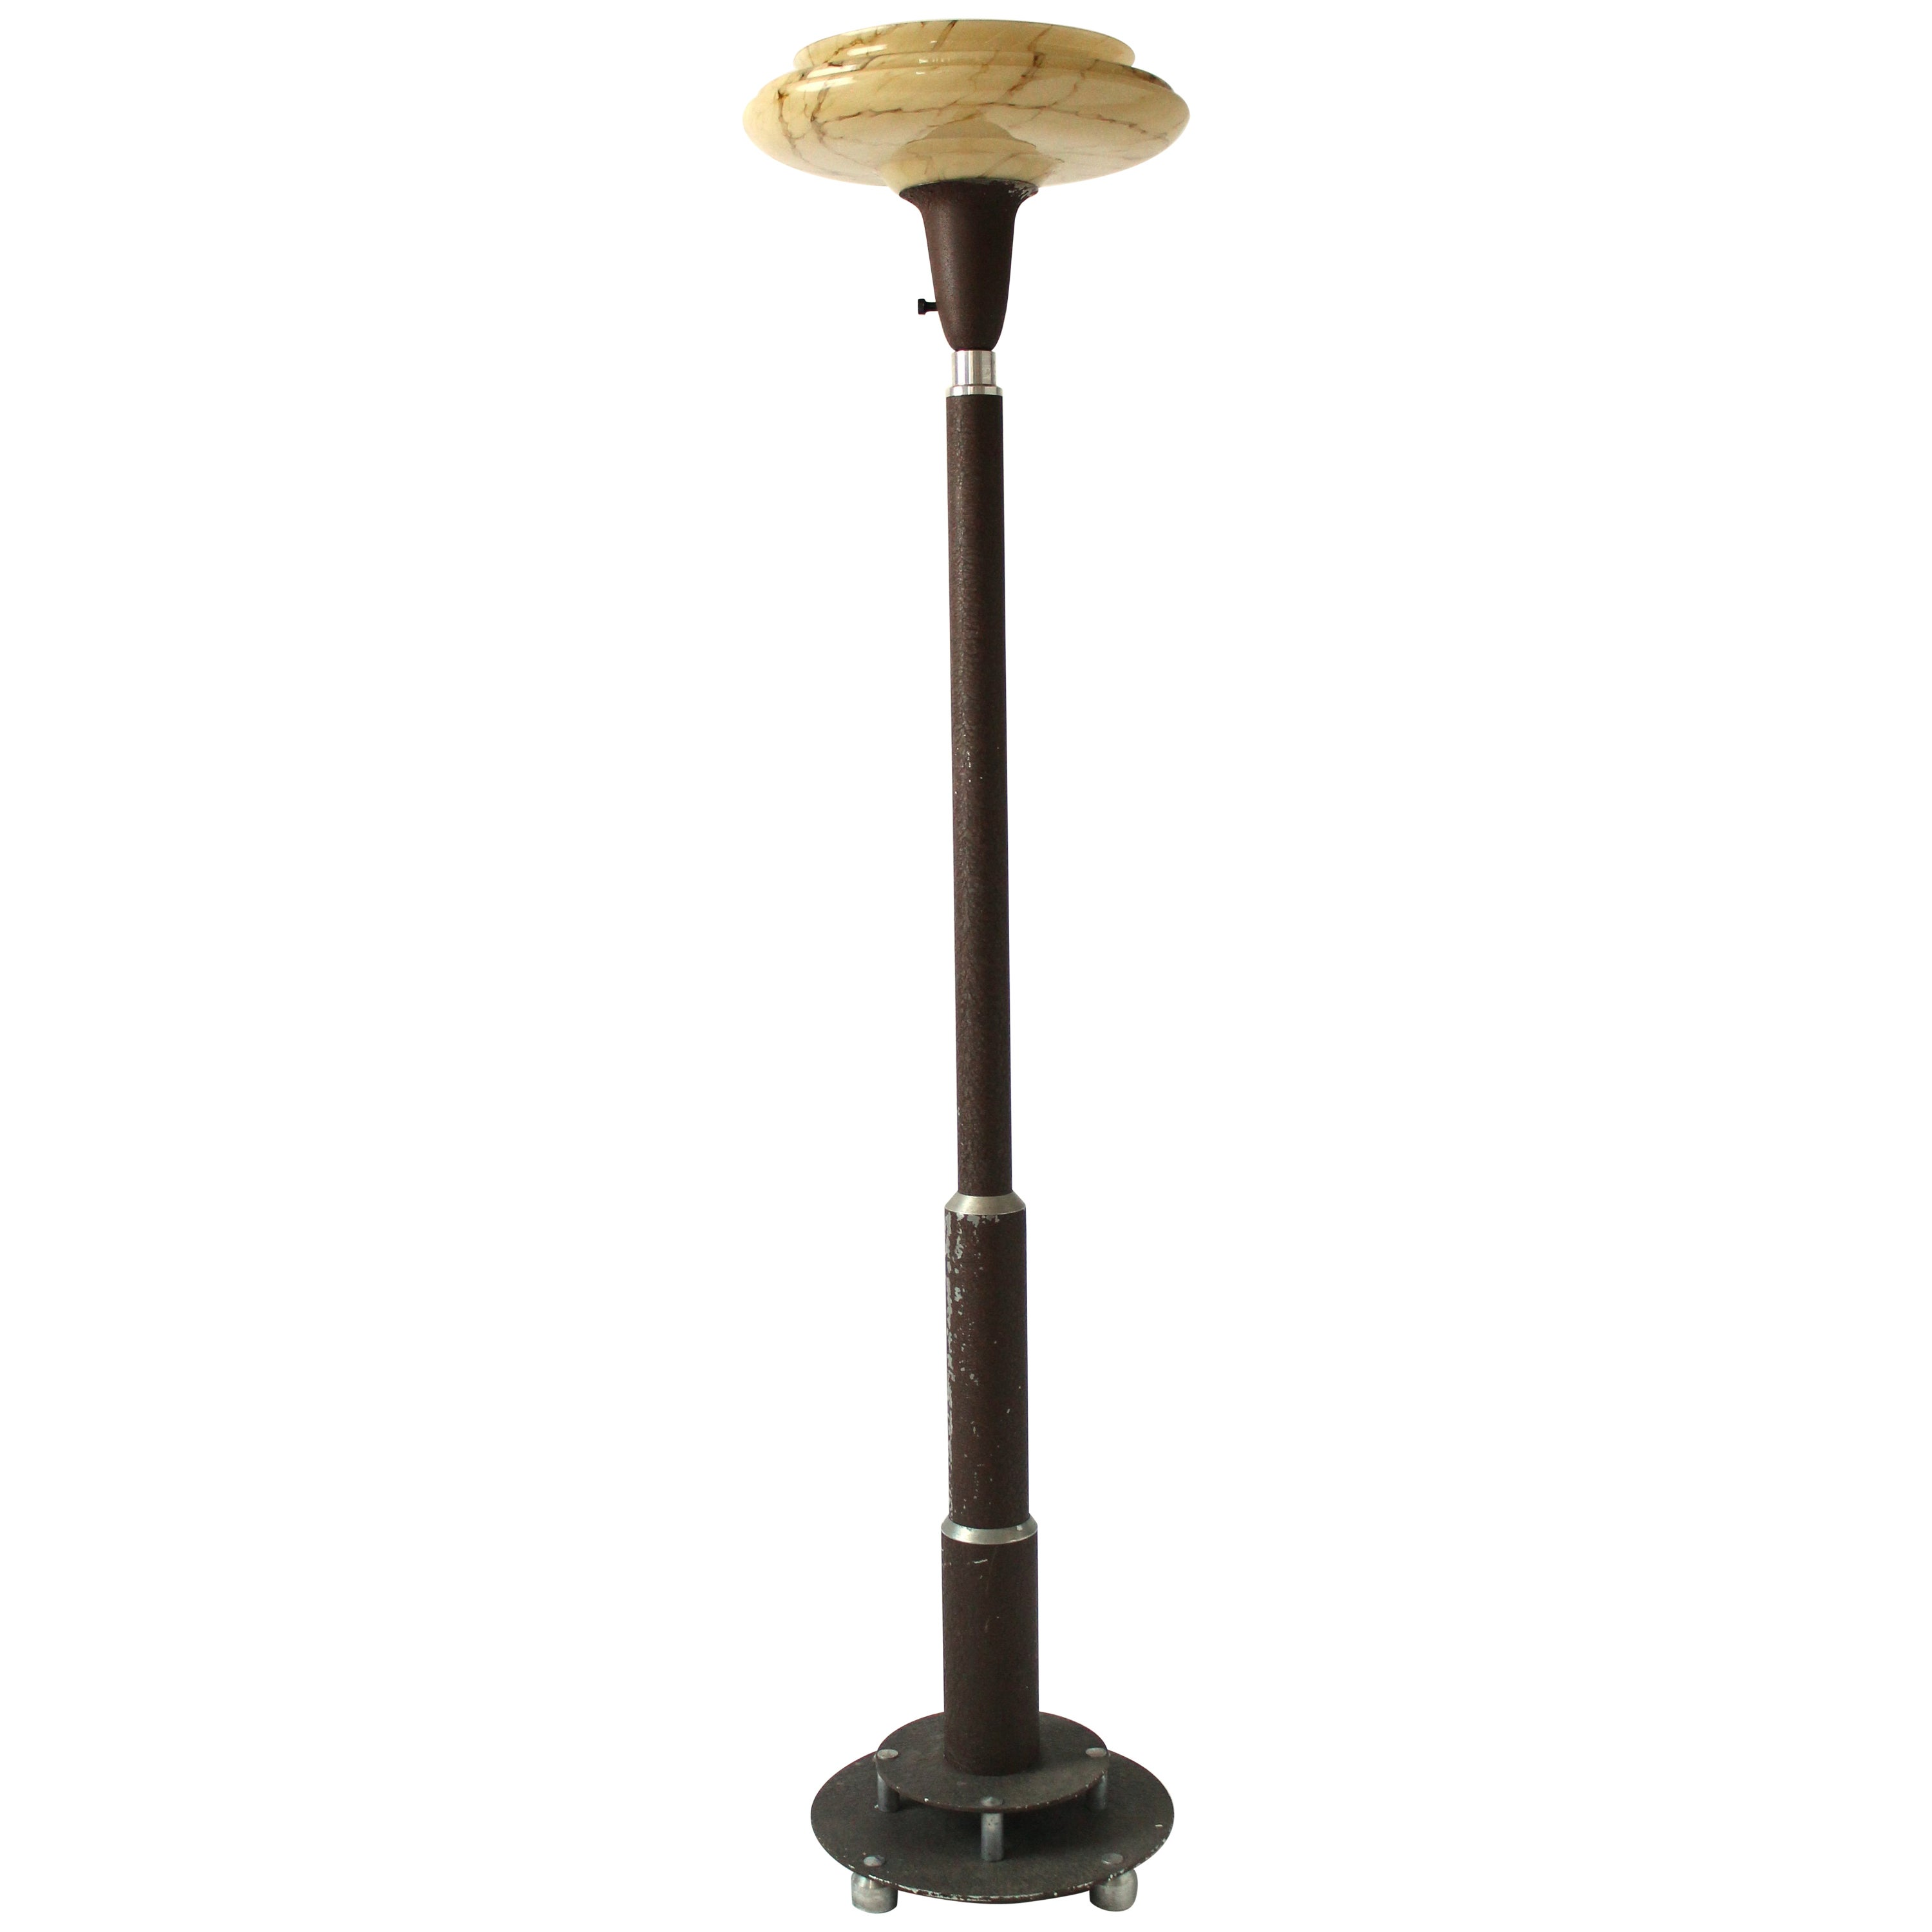 Machine Age Aluminium Floor Lamp, 1930s, USA